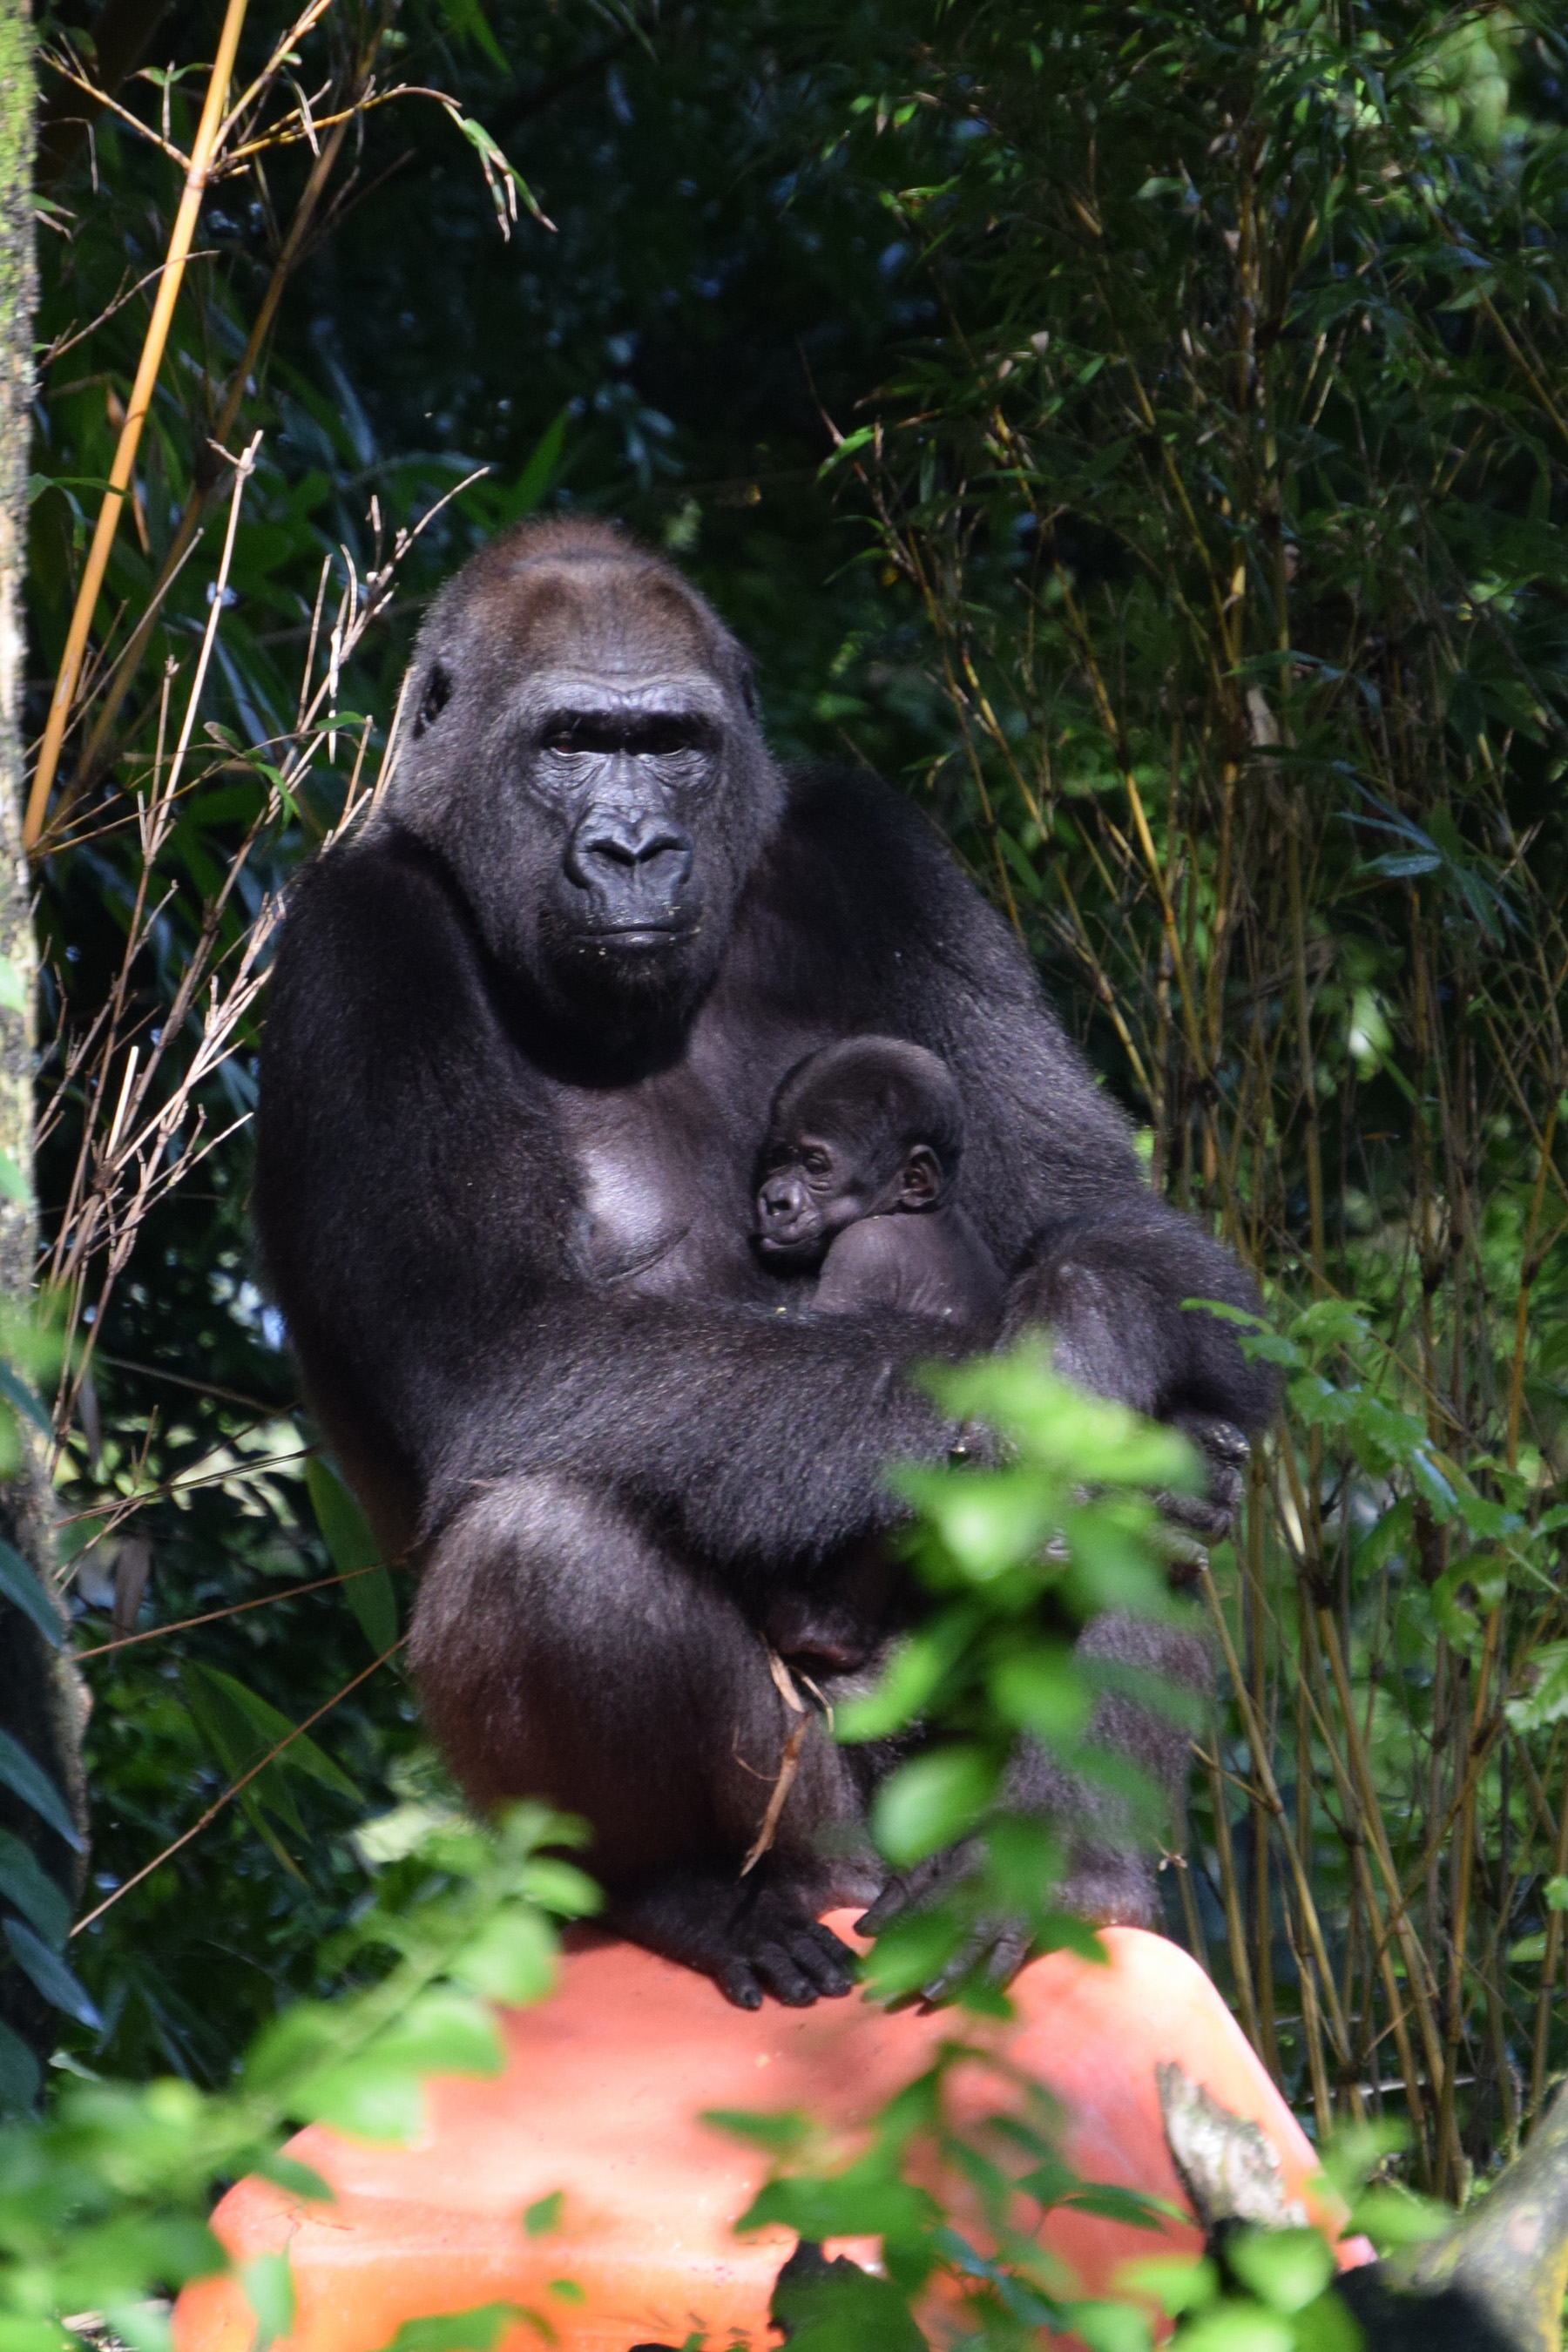 Family Photo Second Baby In Month Born To Endangered